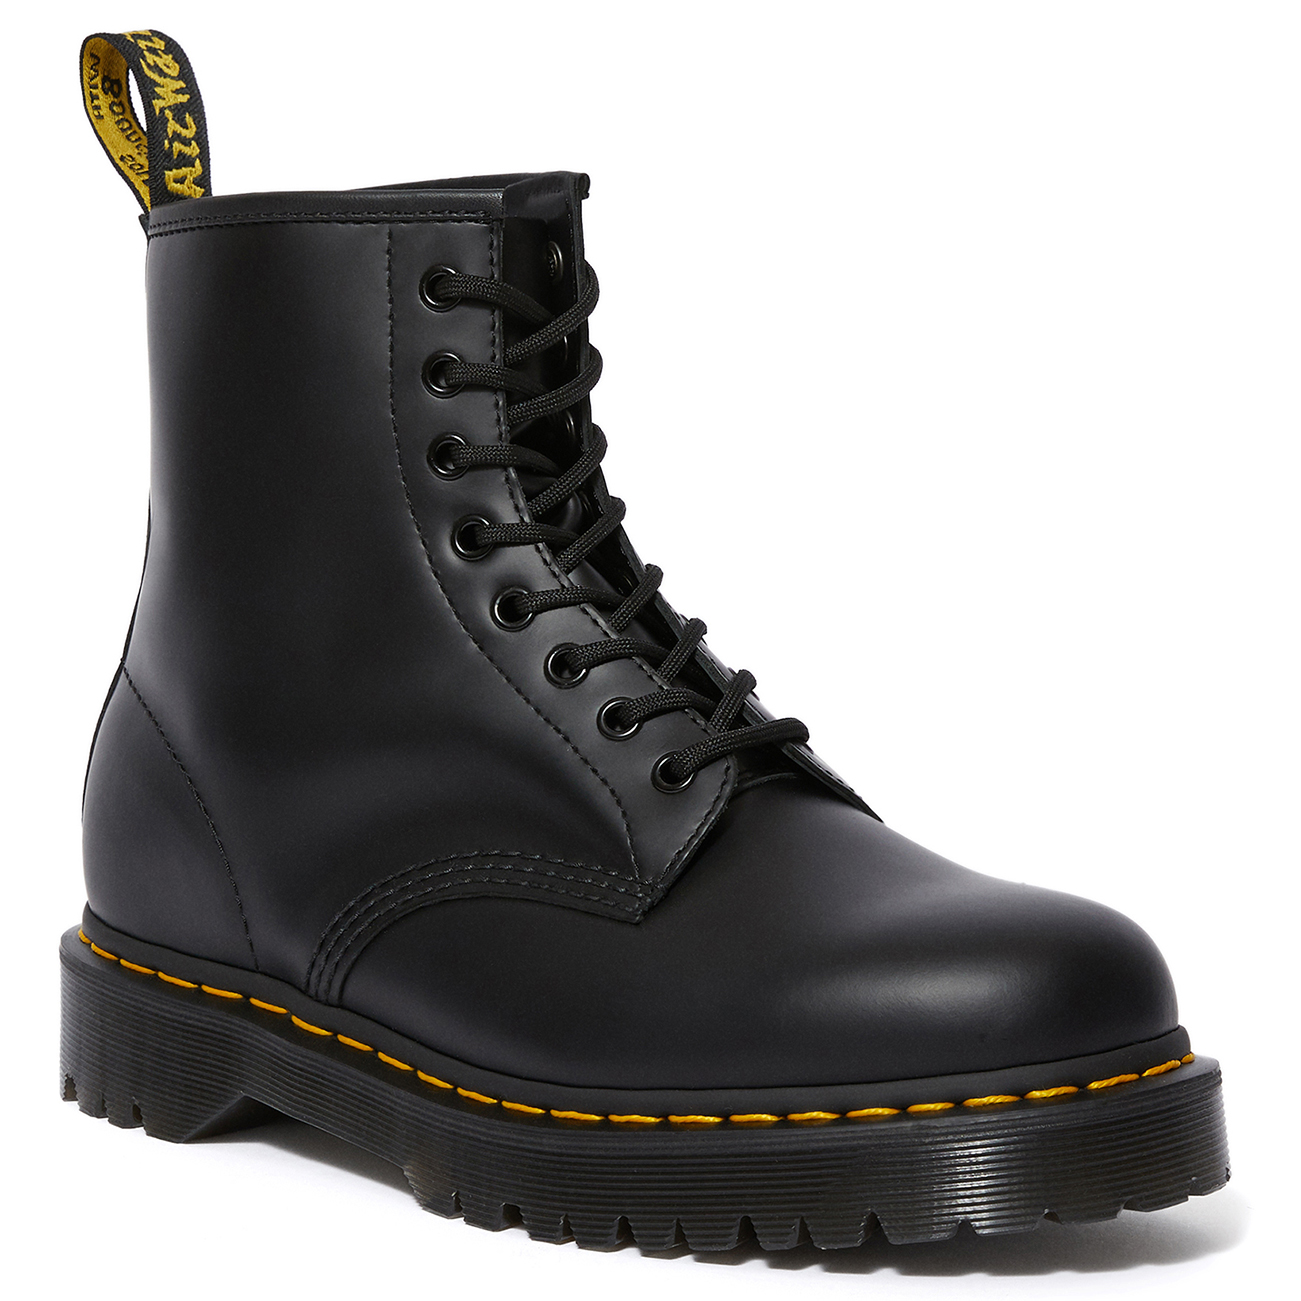 Unisex Adults Dr Martens 1460 Bex Smooth